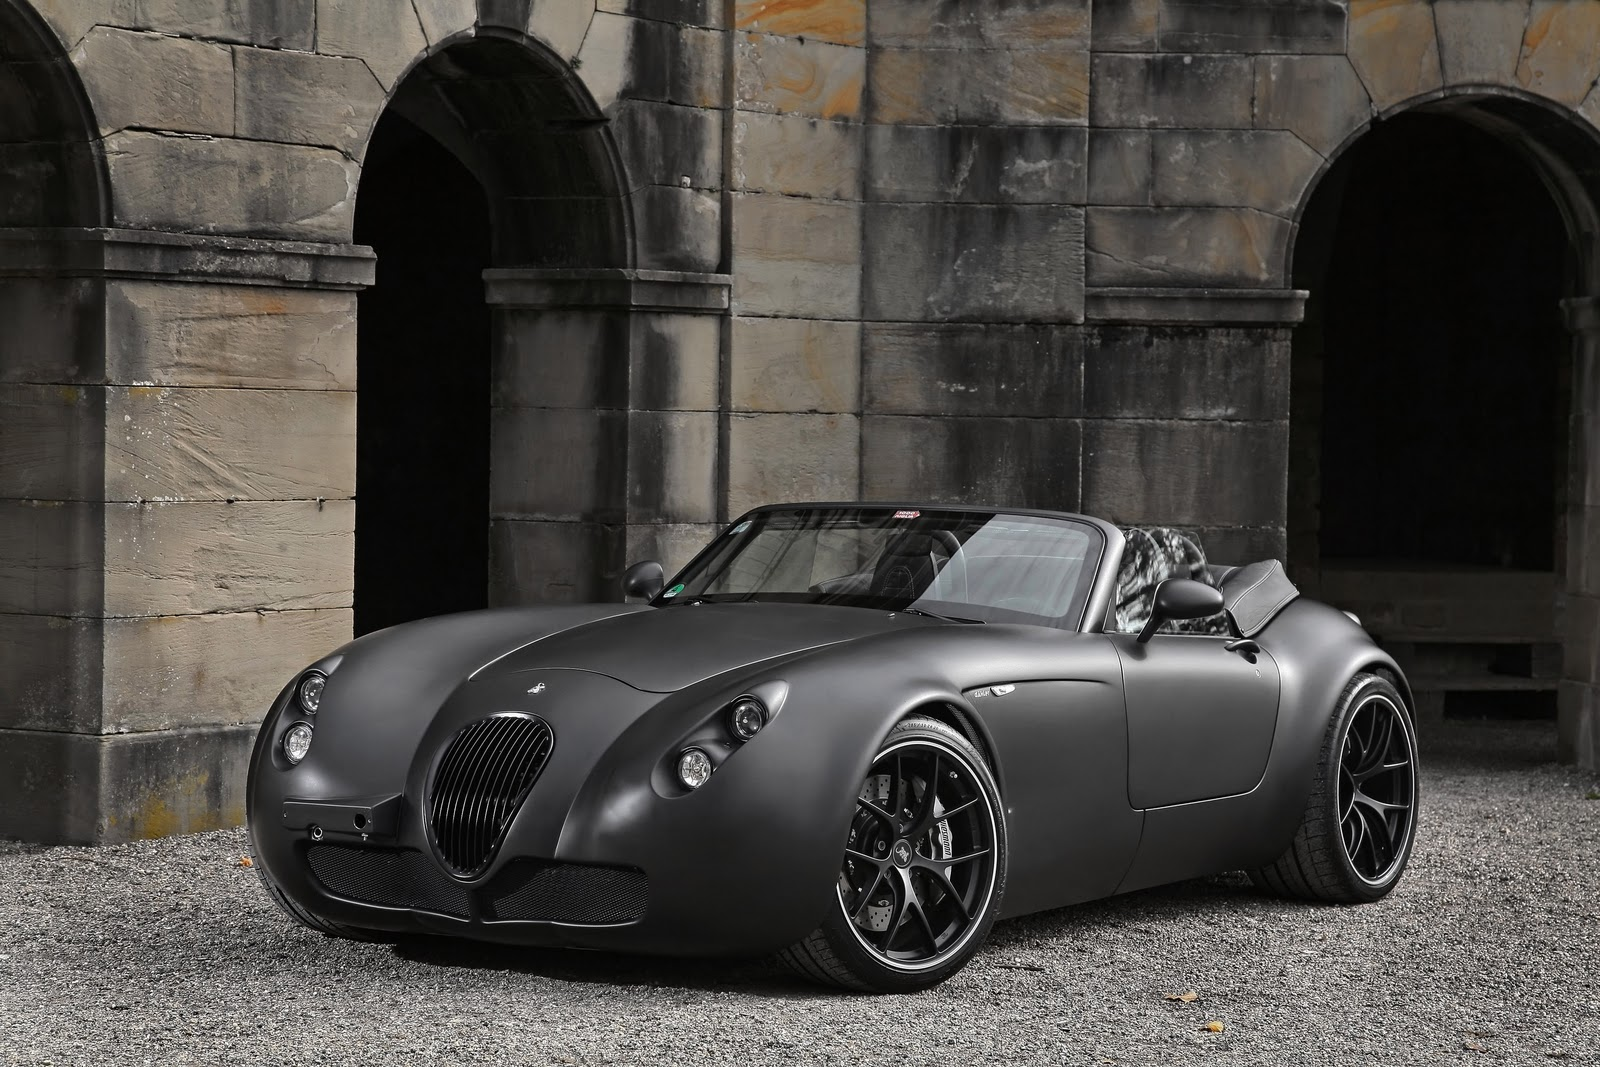 Wiesmann Black Bat Car | Automobile For Life